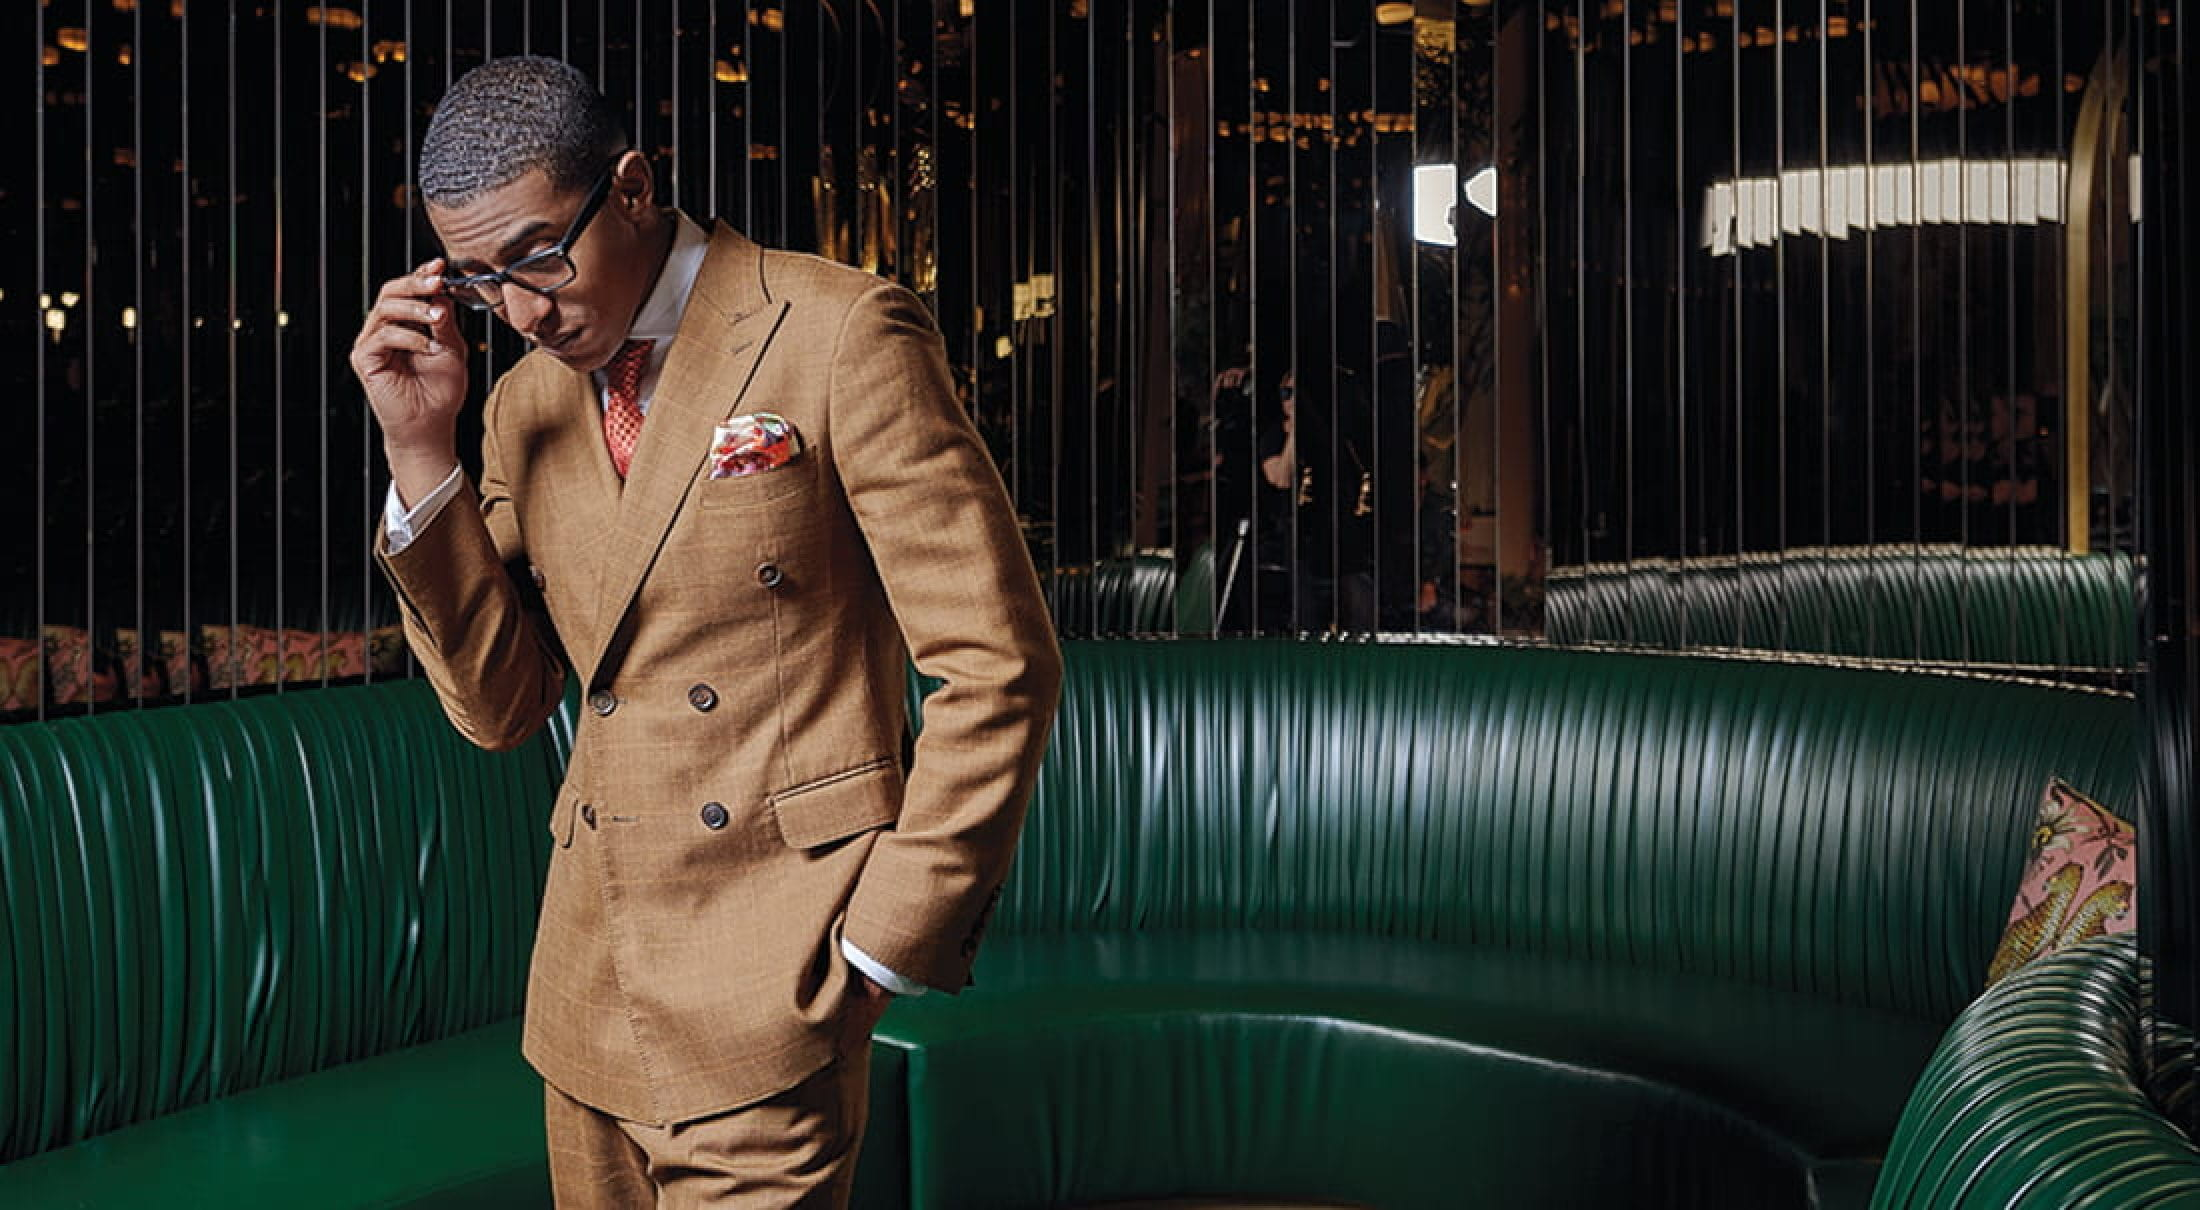 NeAndre Broussard uses style to change the cultural narrative about Black men.